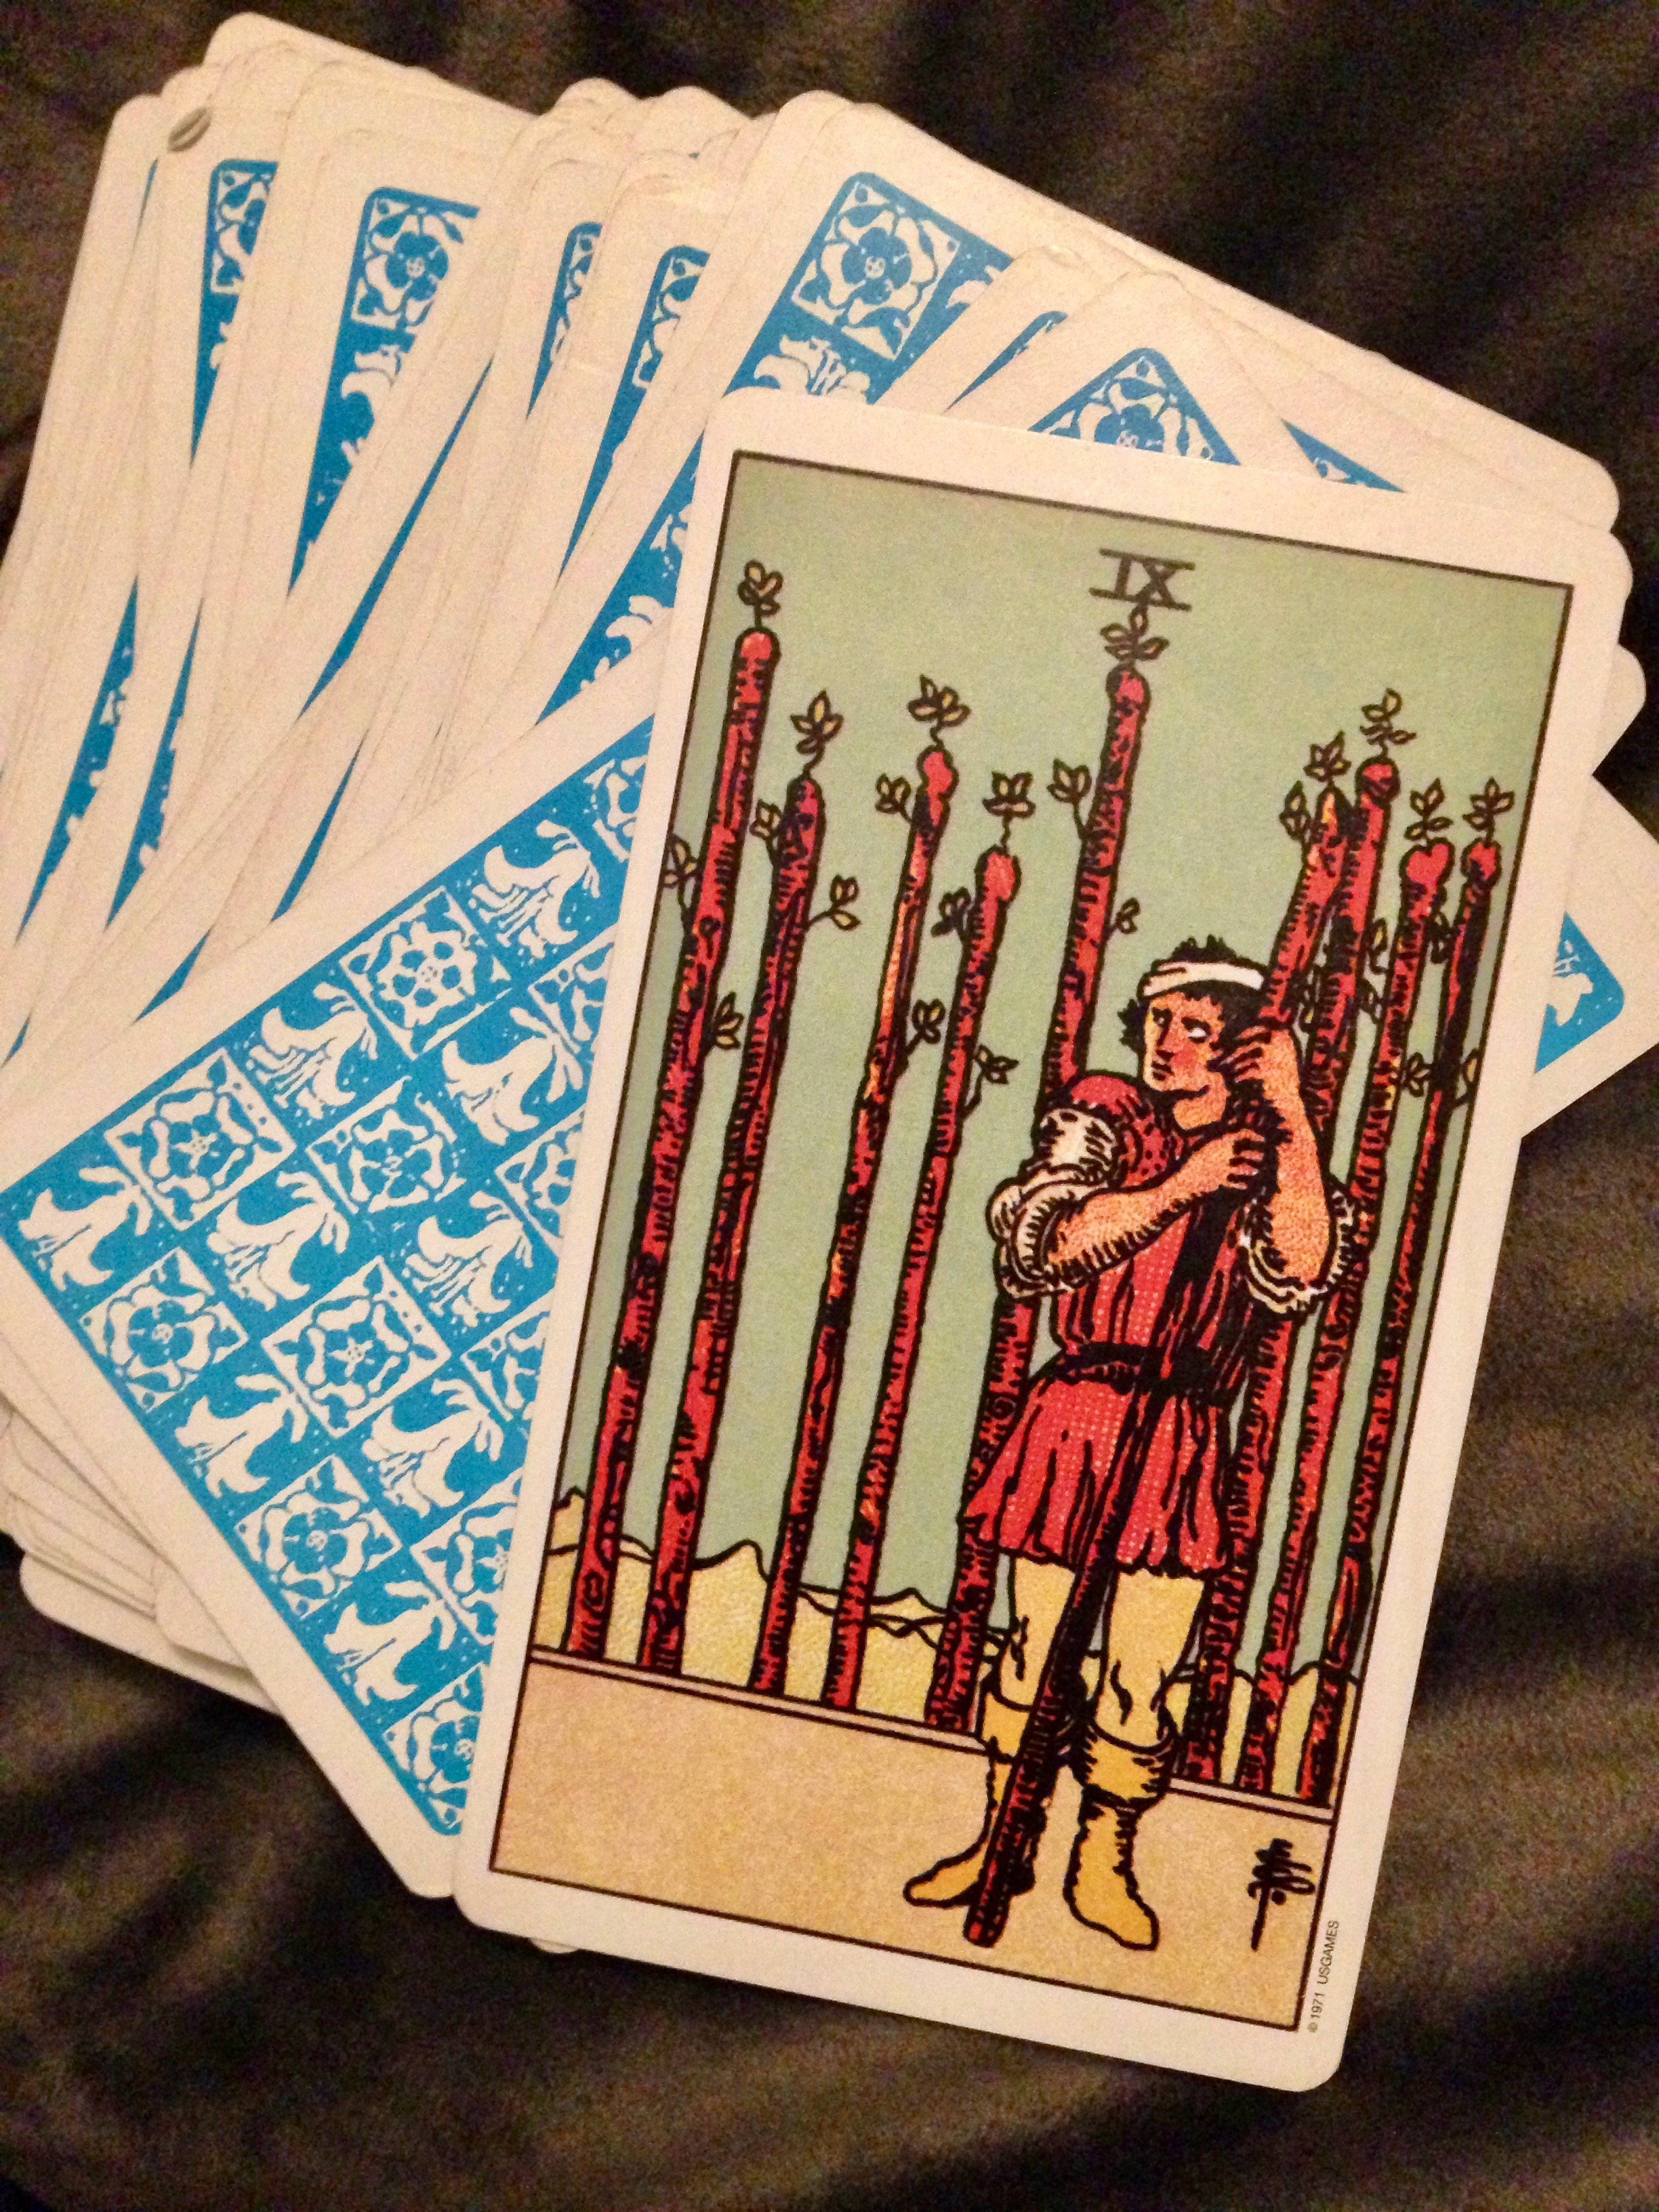 the classic Rider-Waite-Smith Nine of Wands